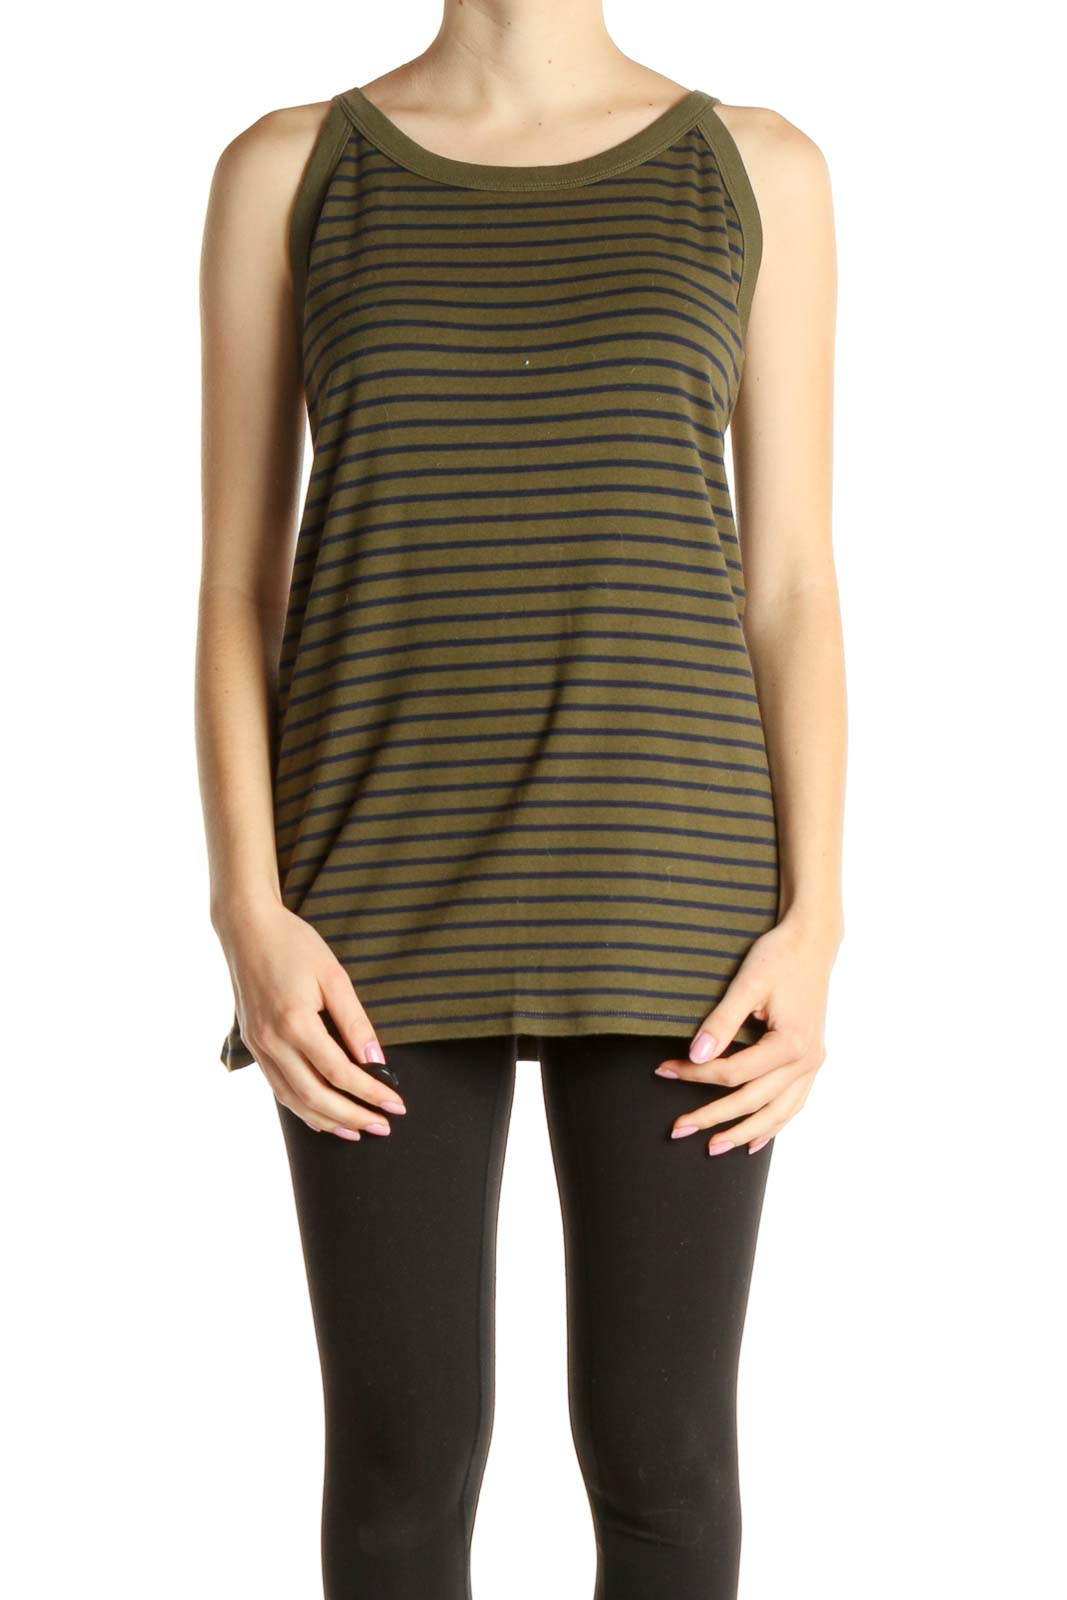 Green Striped Casual Tank Top Front